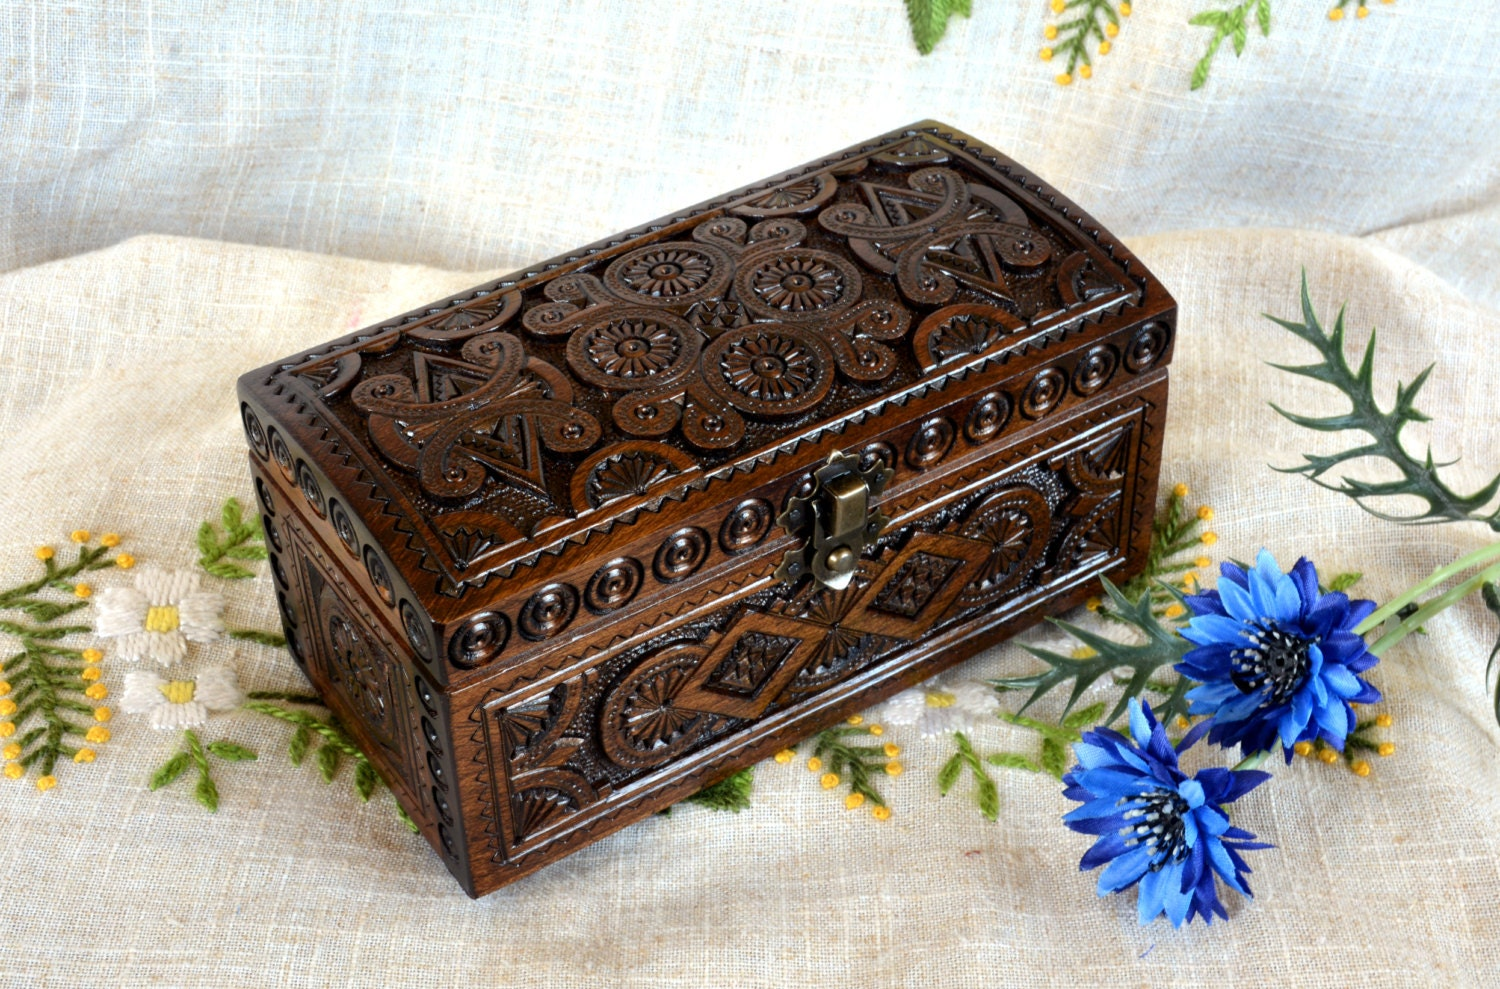 Wooden Jewelry Box Ring Box Wooden Box Wood Carving Wood Box